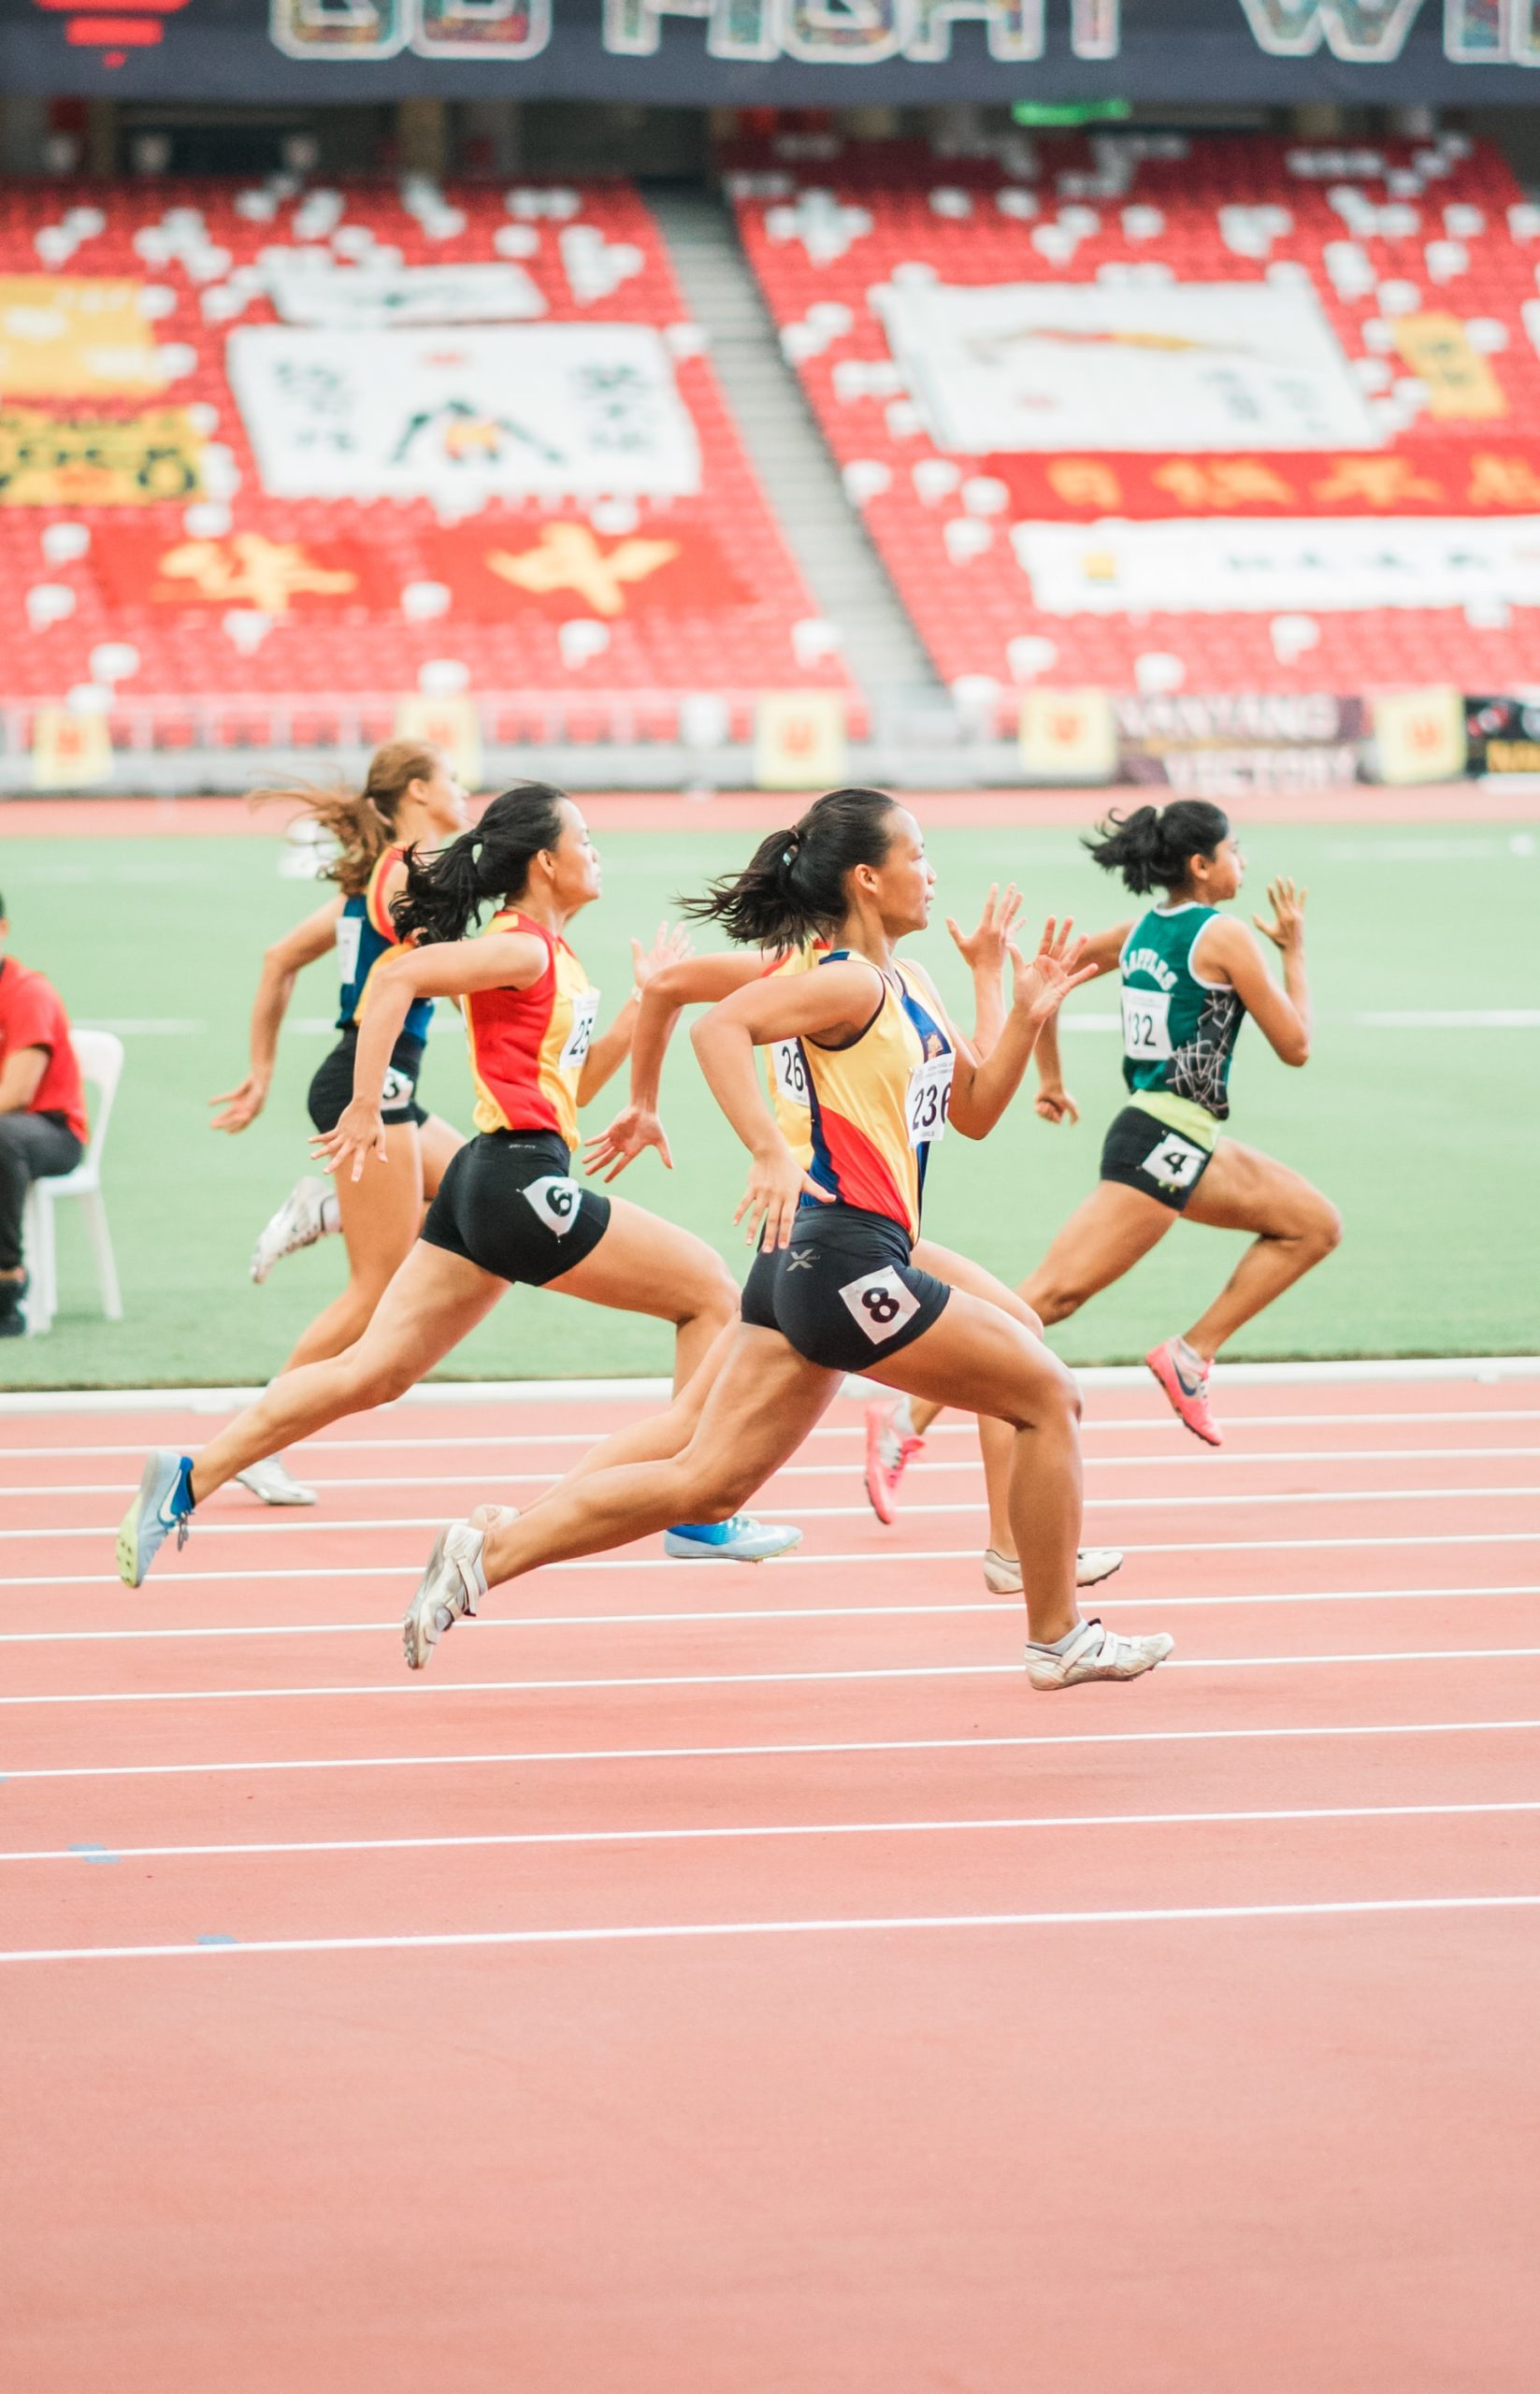 Air phase of running on track